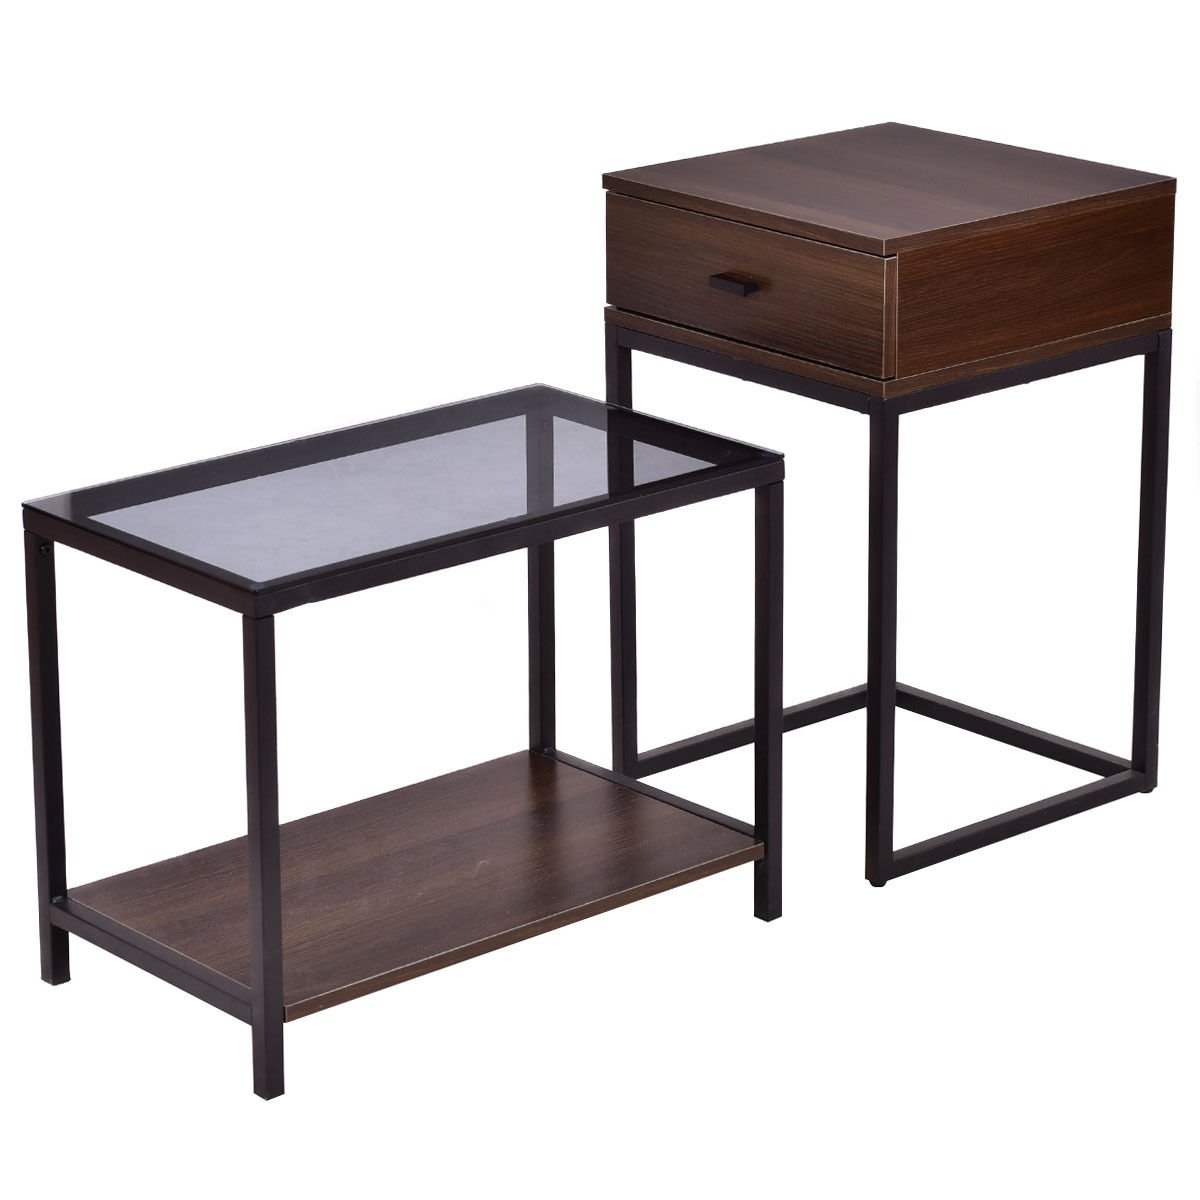 nesting table coffee side end used tables and metal frame wood glass topit consists two that can separately combined living room wall lights laura ashley armchairs sitting chairs